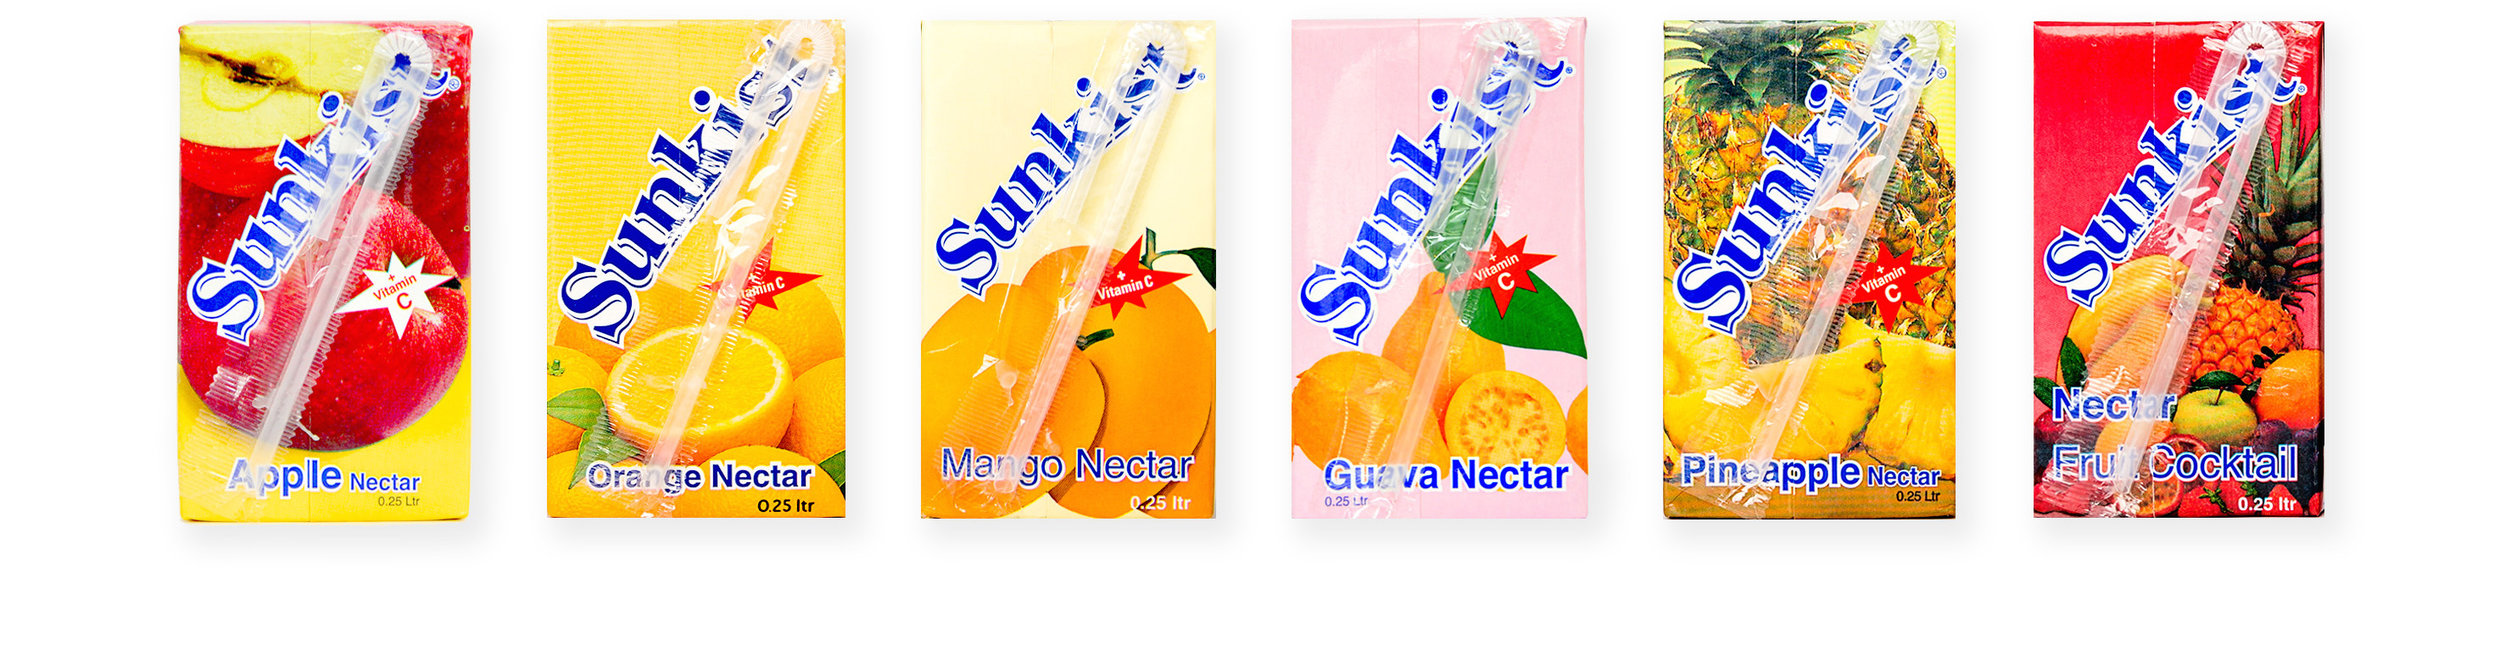 Sunkist Lineup Old English.jpg